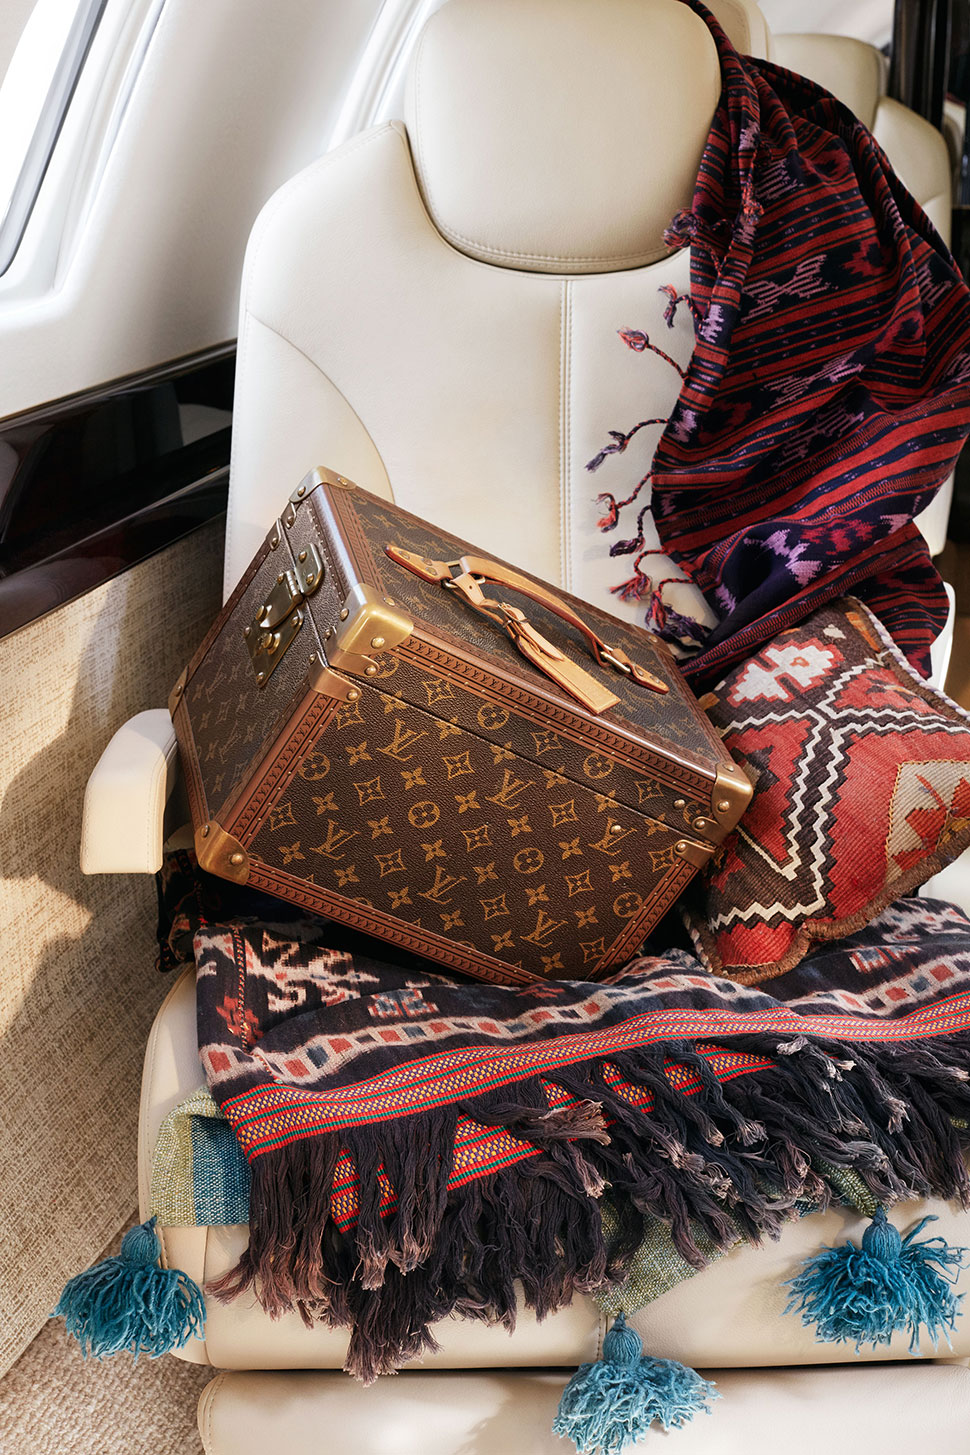 Private Jet Interior Product Placement Photoshoot